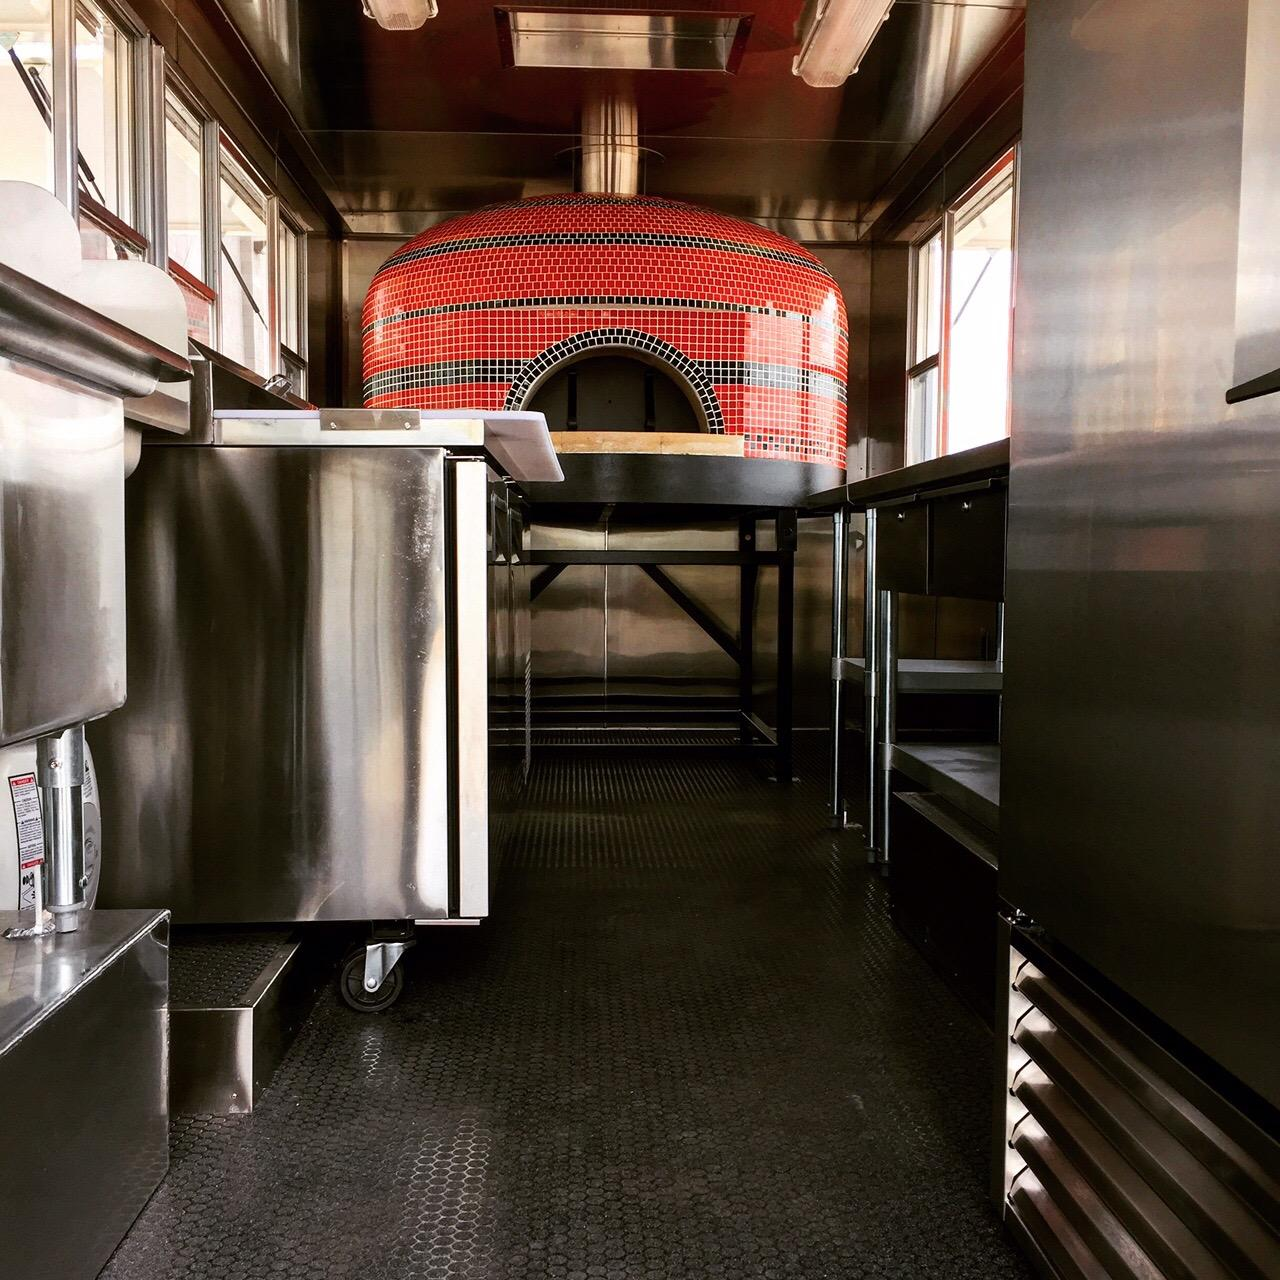 This Food Truck Has A Custom Pizza Oven Inside